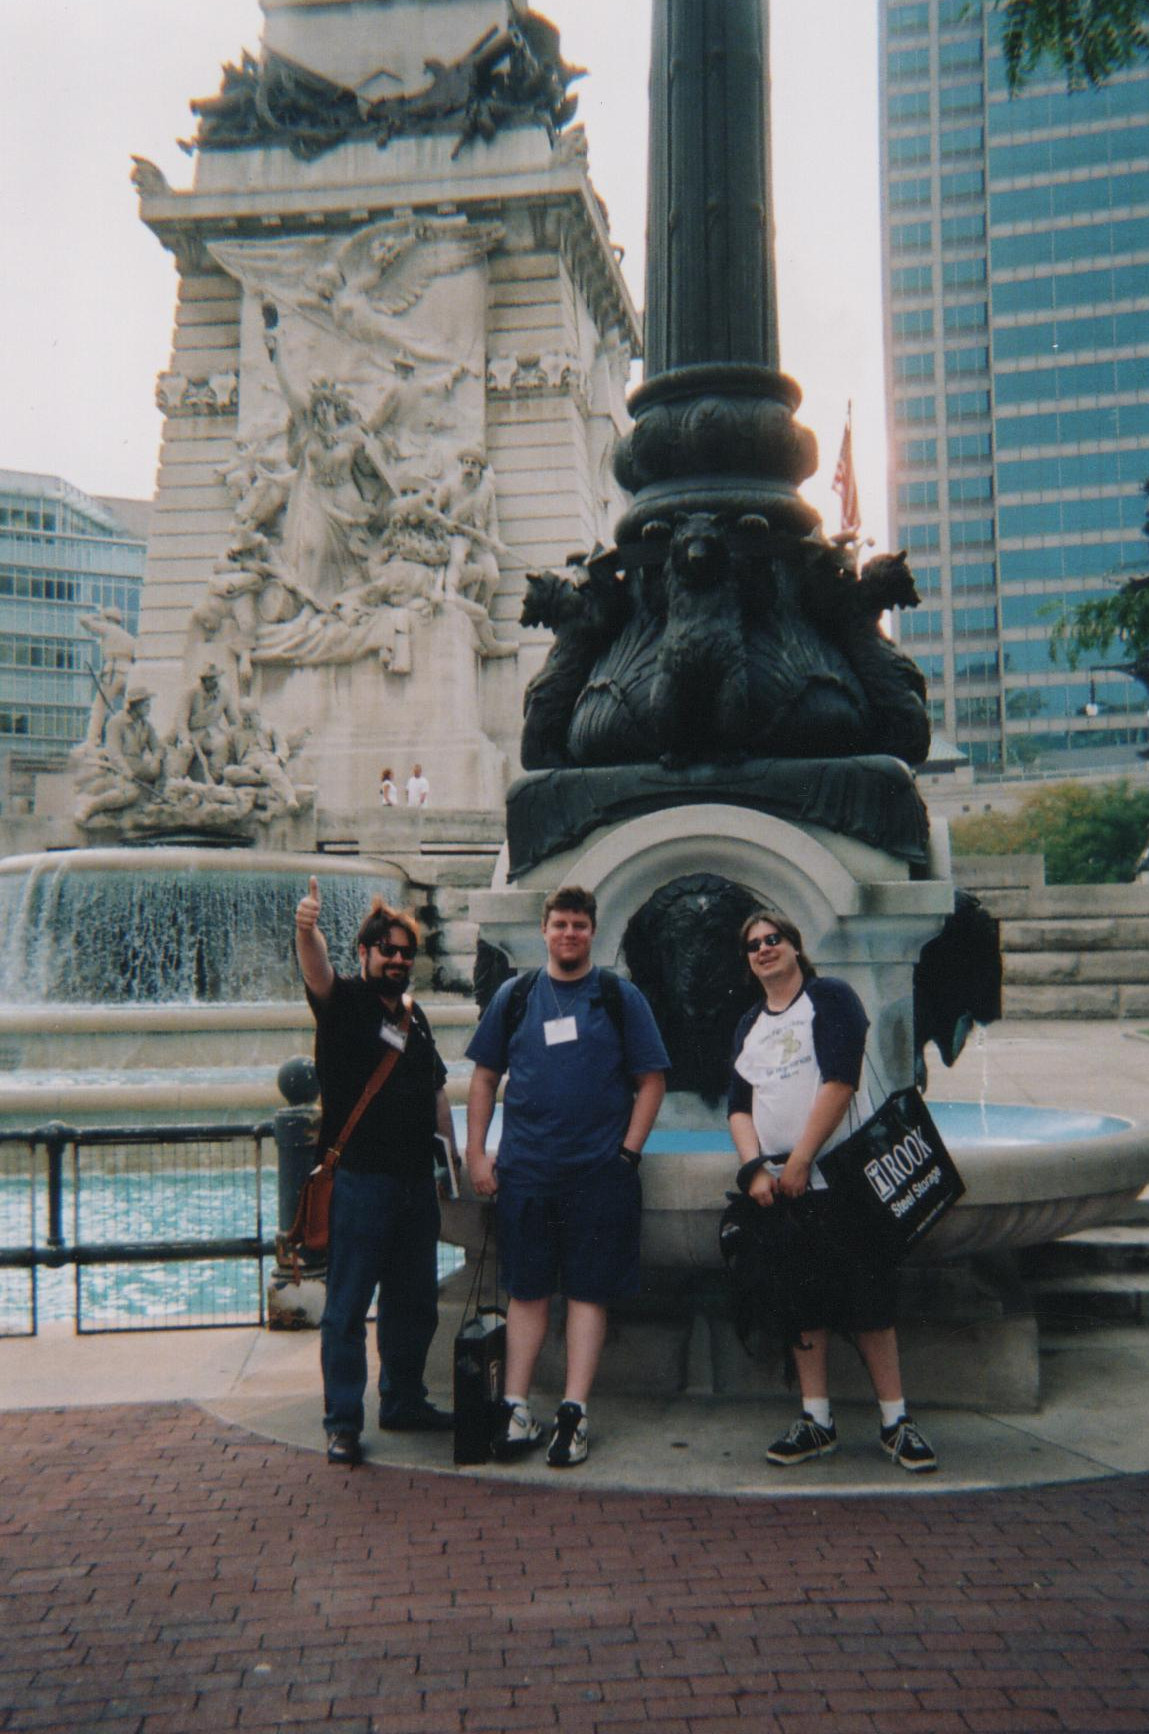 BJ, Joe, and me at an early 2000's GenCon.